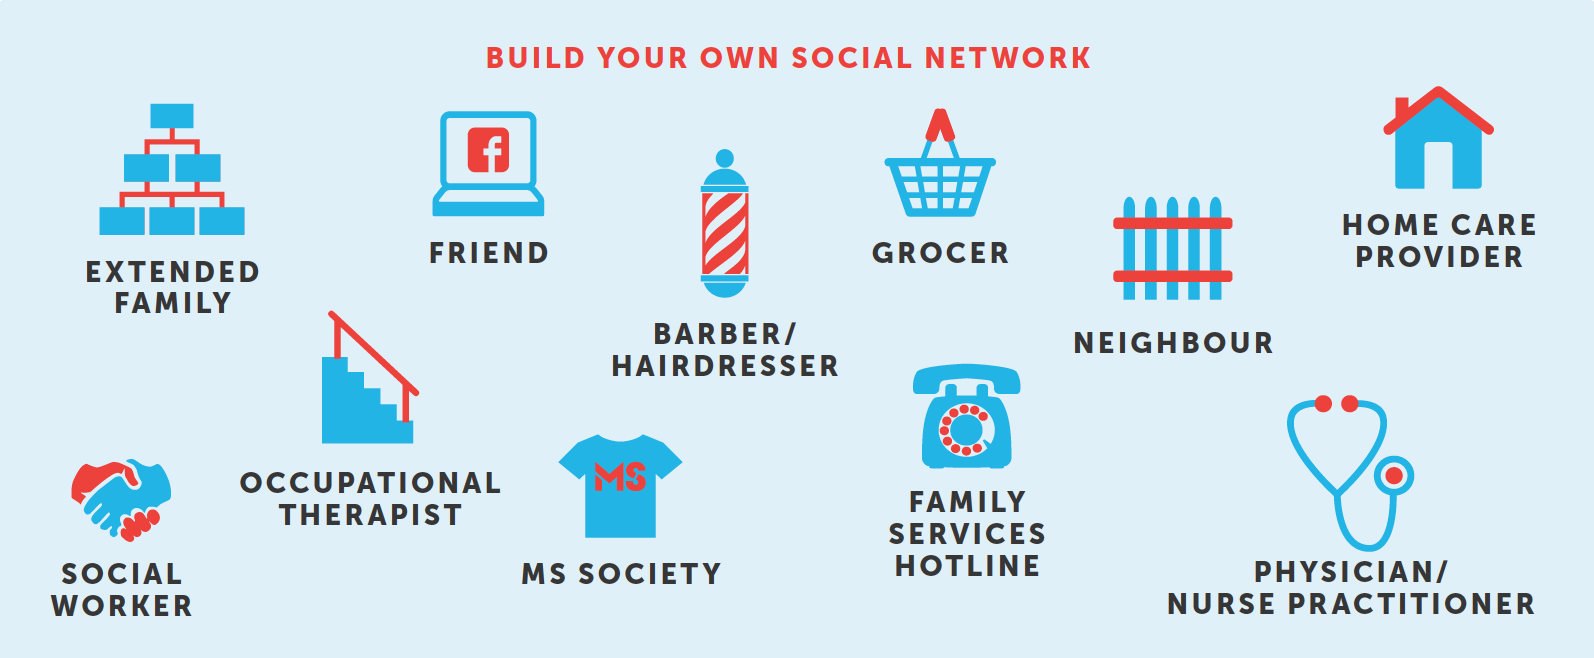 Build your own social network infographic